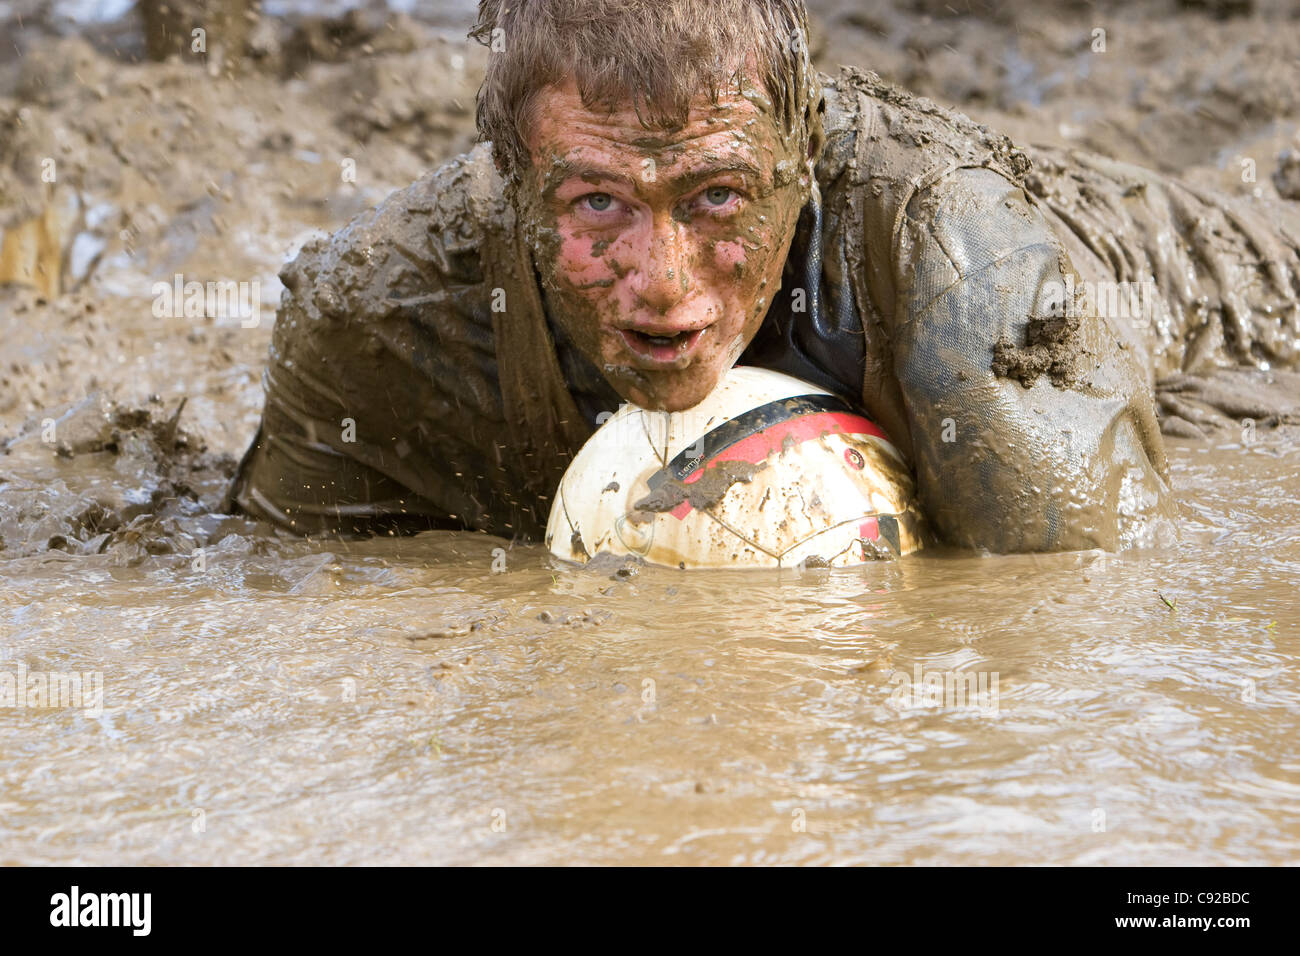 The quirky annual Swamp Soccer World Cup, held in Strachur, Argyll, Scotland - Stock Image